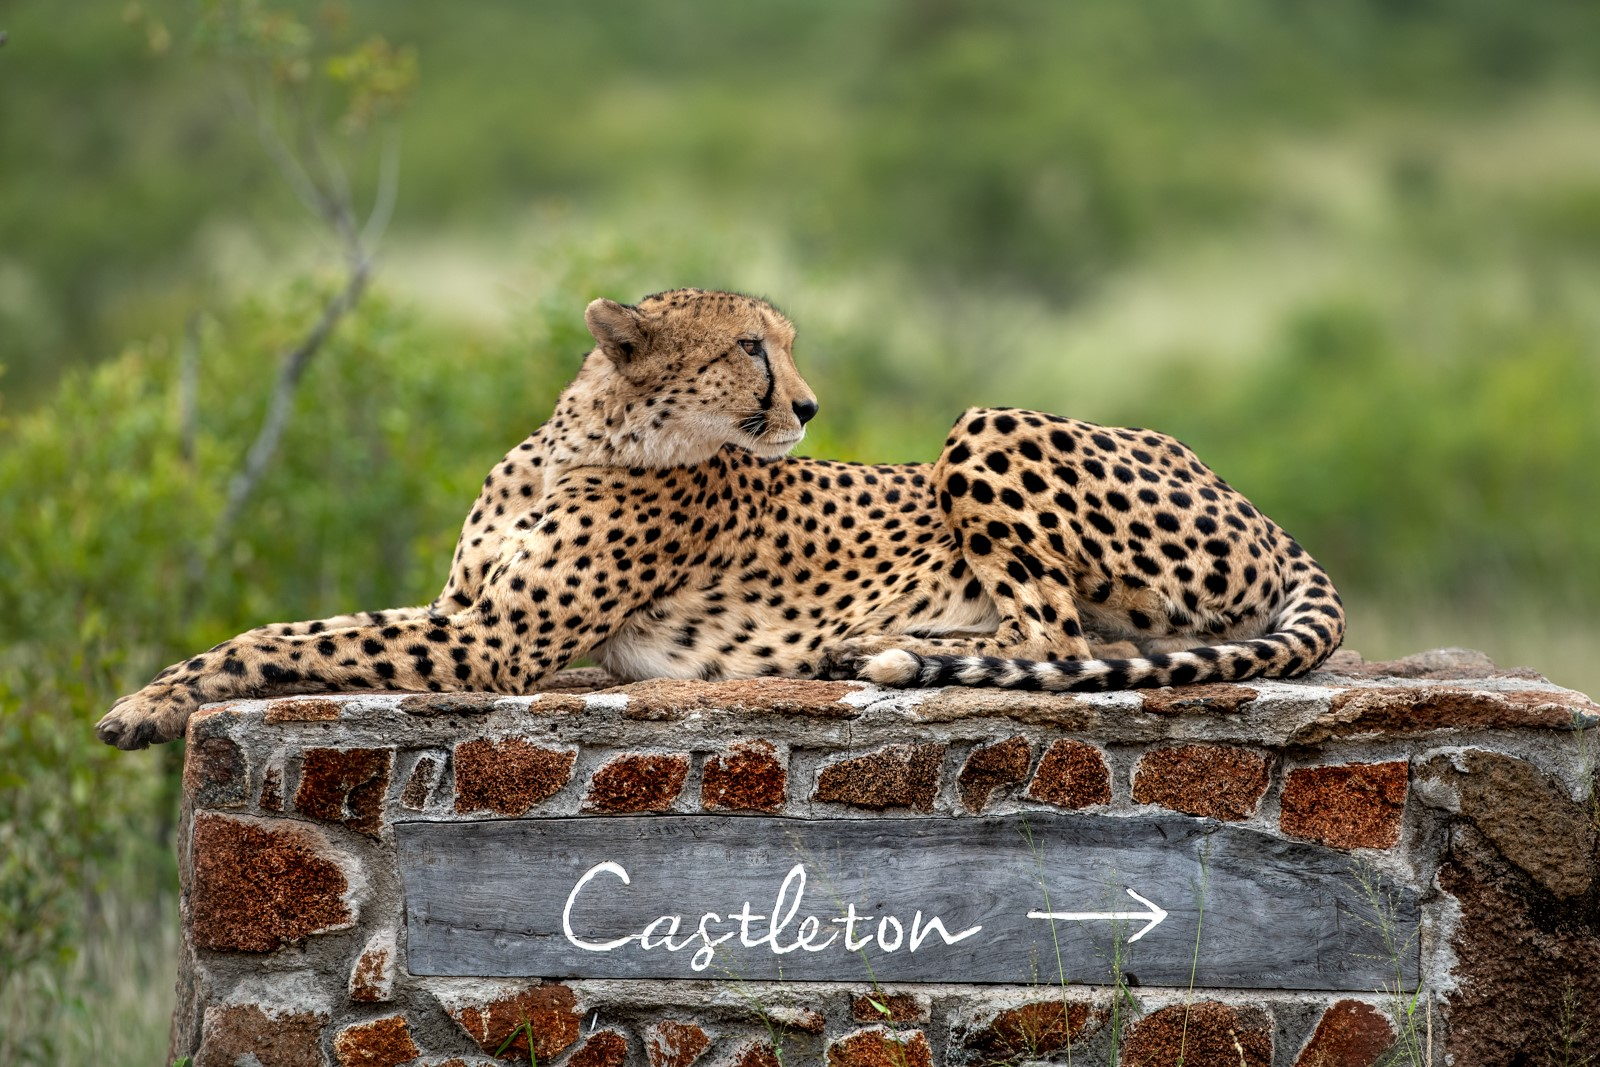 Castleton with cheetah